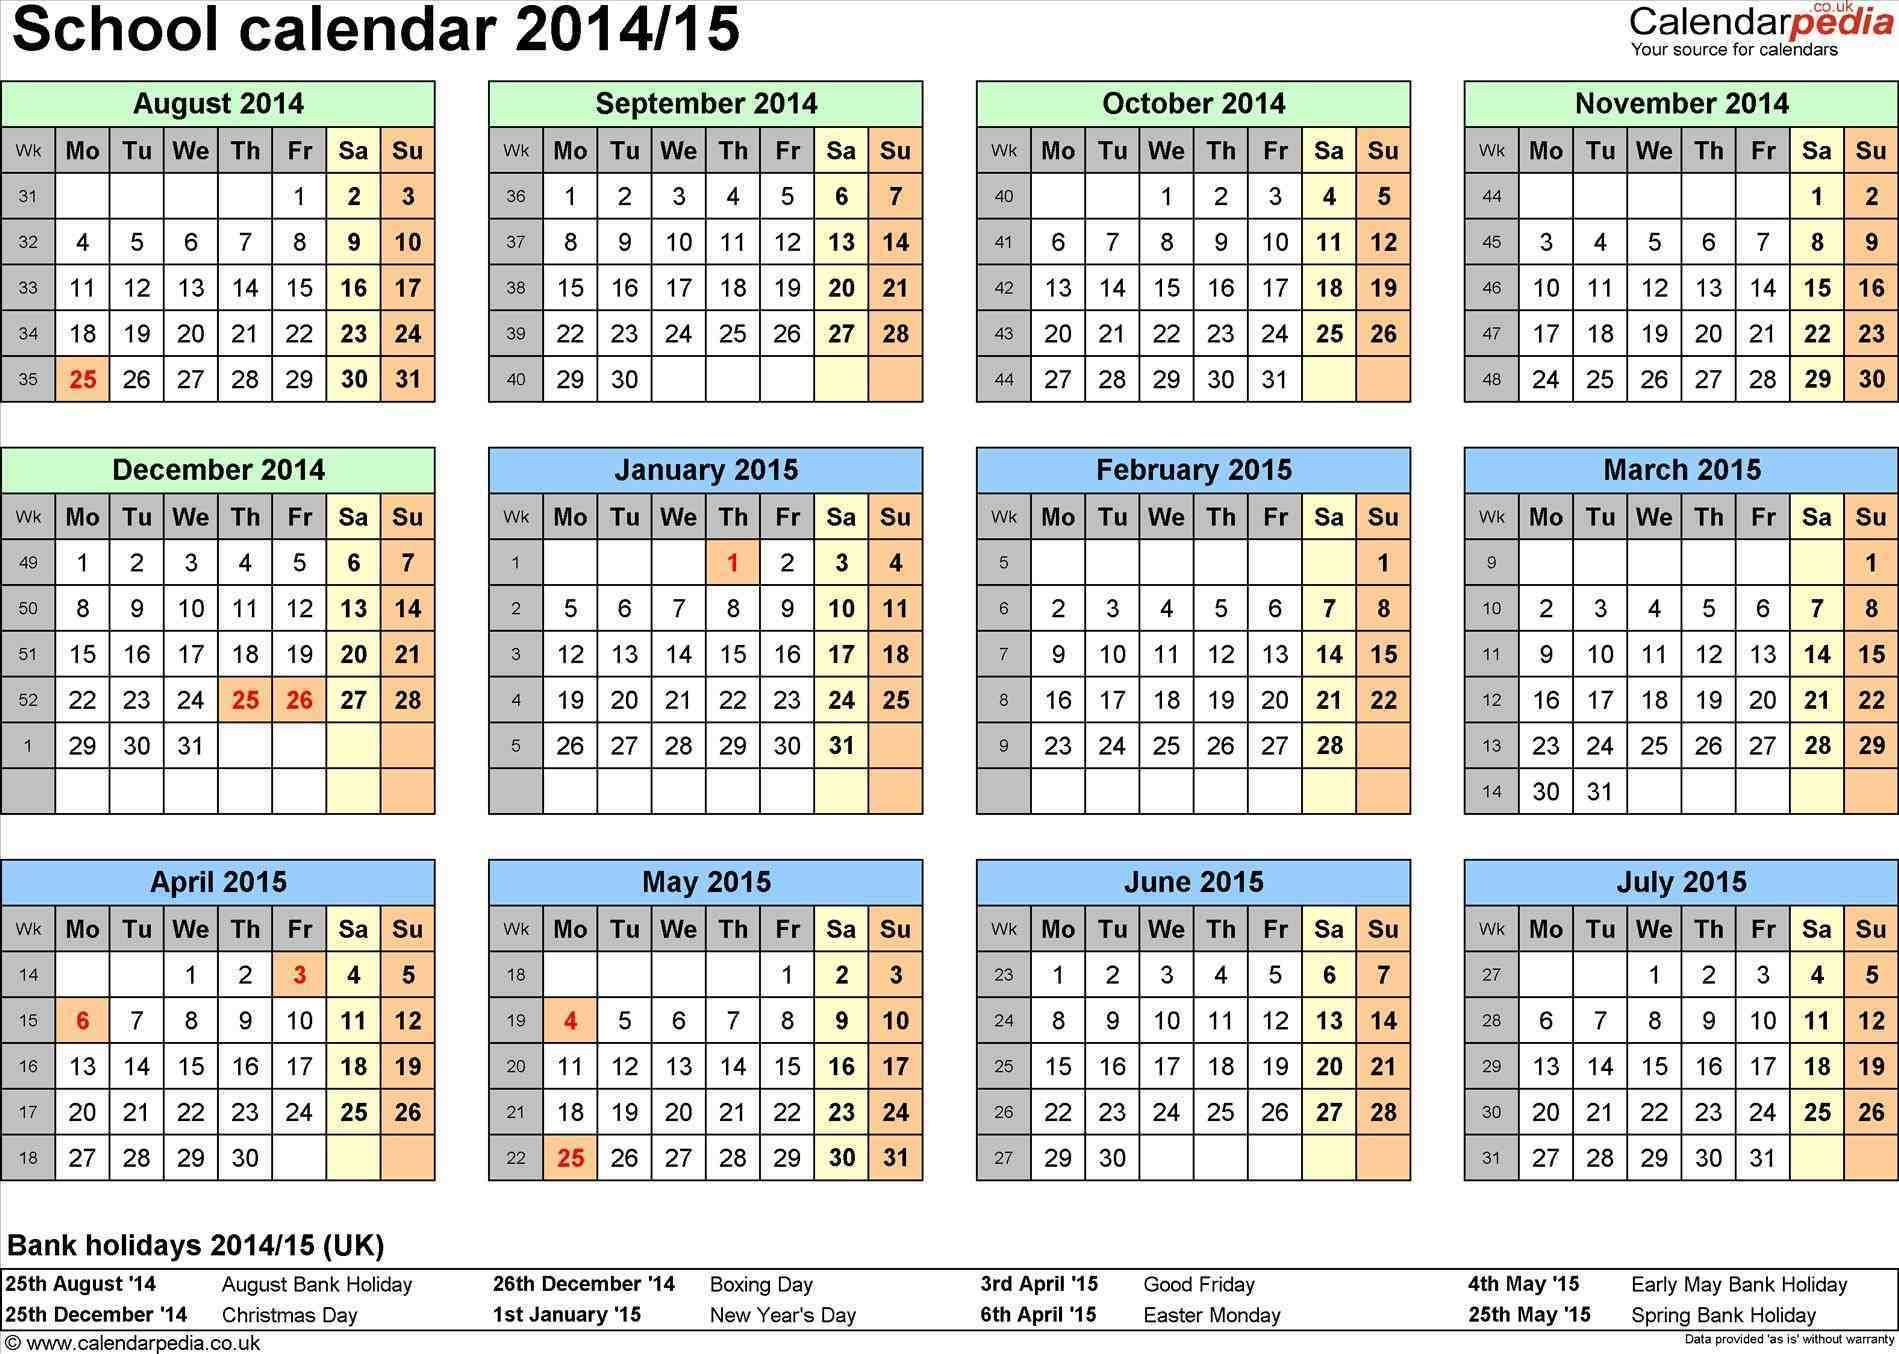 Calendar 2014 15 Template Year Calendars For U Uk Excel School